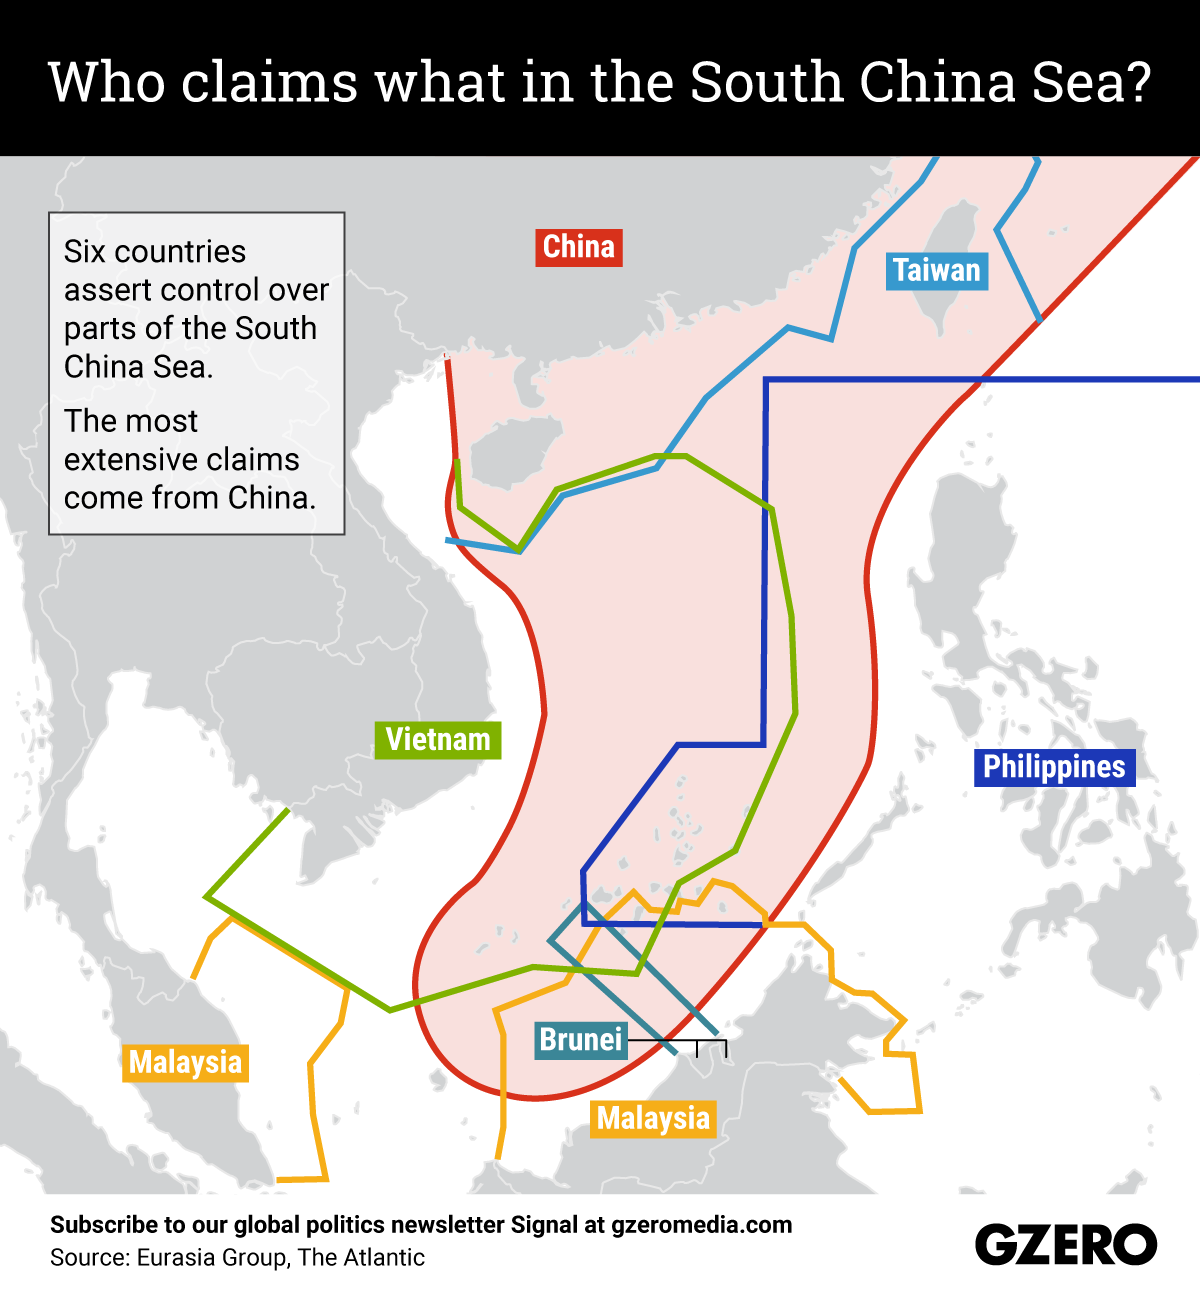 The Graphic Truth: Who claims what in the South China Sea?